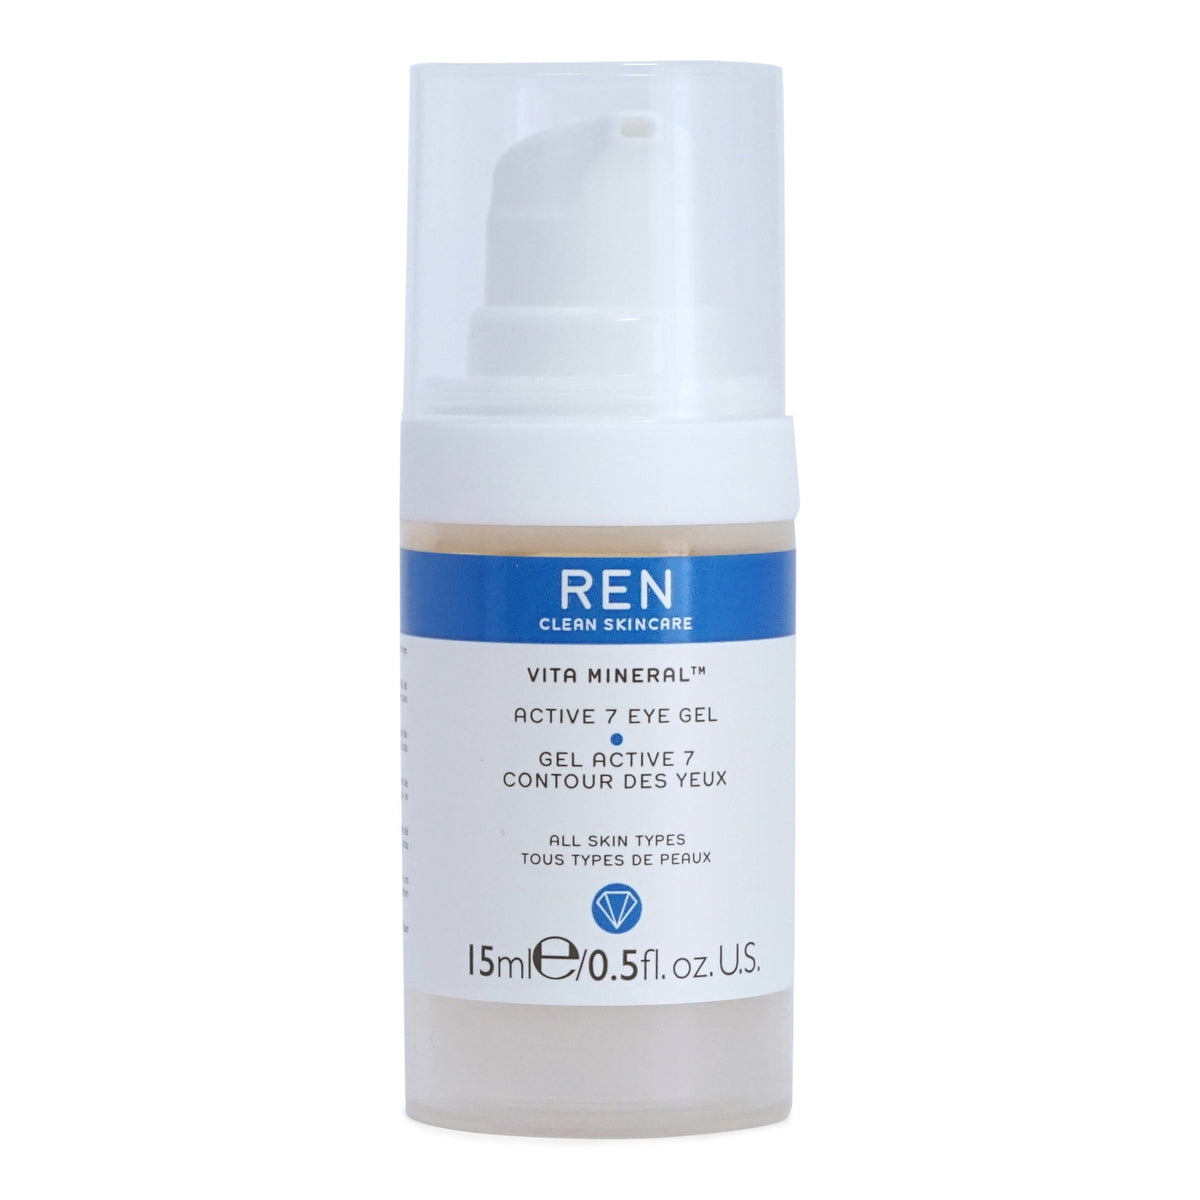 REN Skincare Vita Mineral Active 7 Eye Gel - lighweight cooling gel reduces puffiness and dar circles around the eyes  (15 ml / 0.5 fl. oz.) (3/cs)